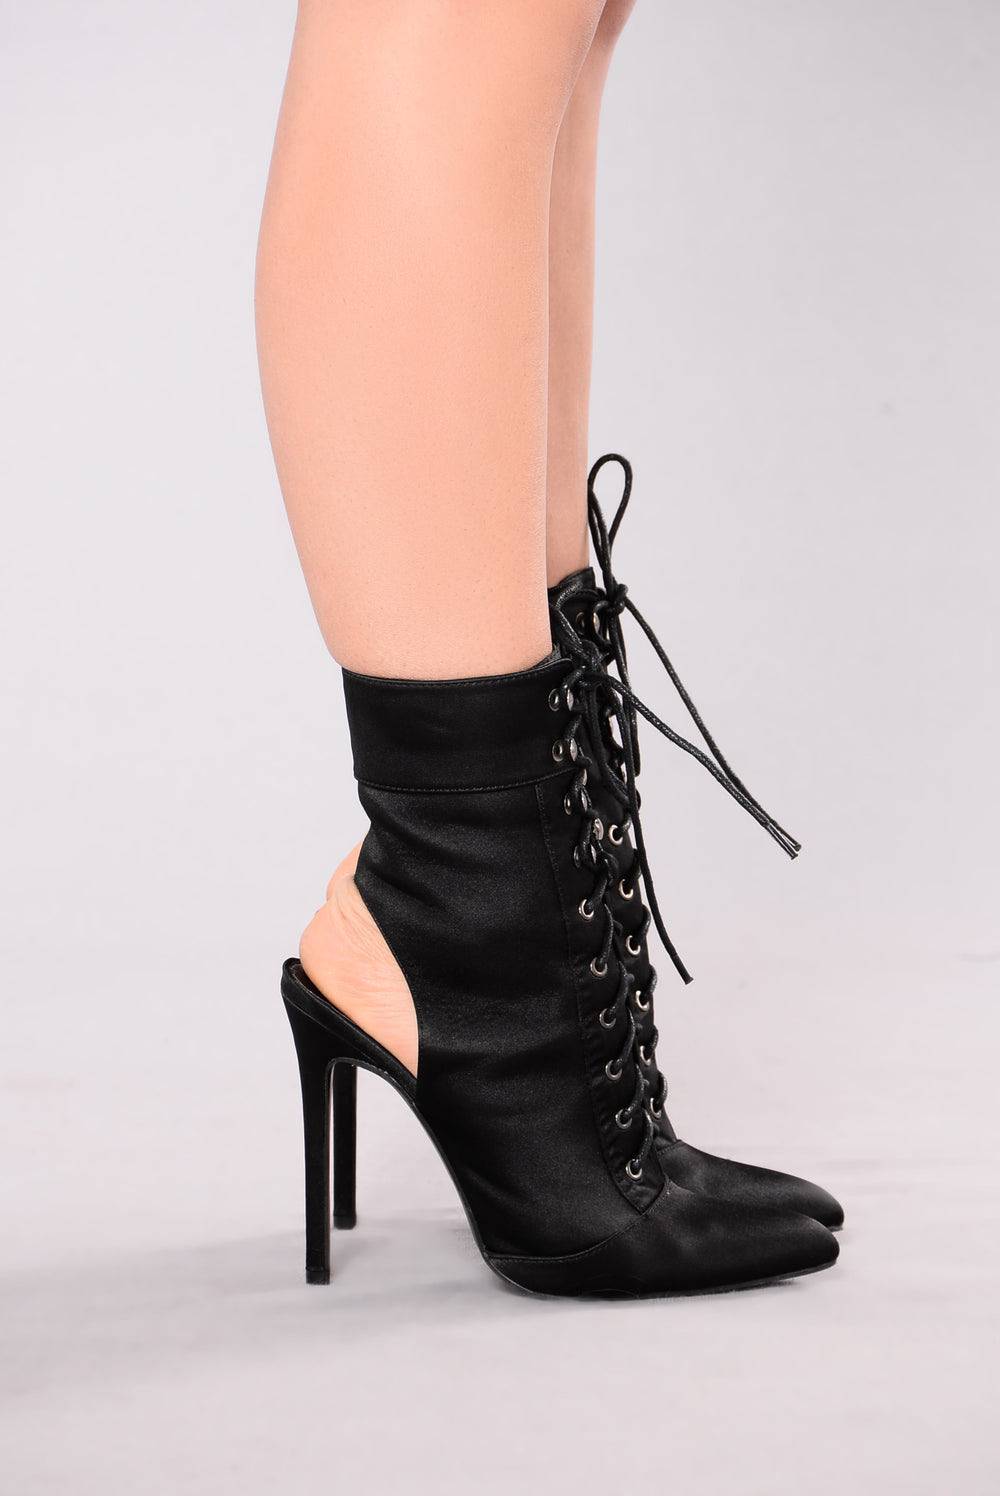 Anaya Lace Up Heel - Black